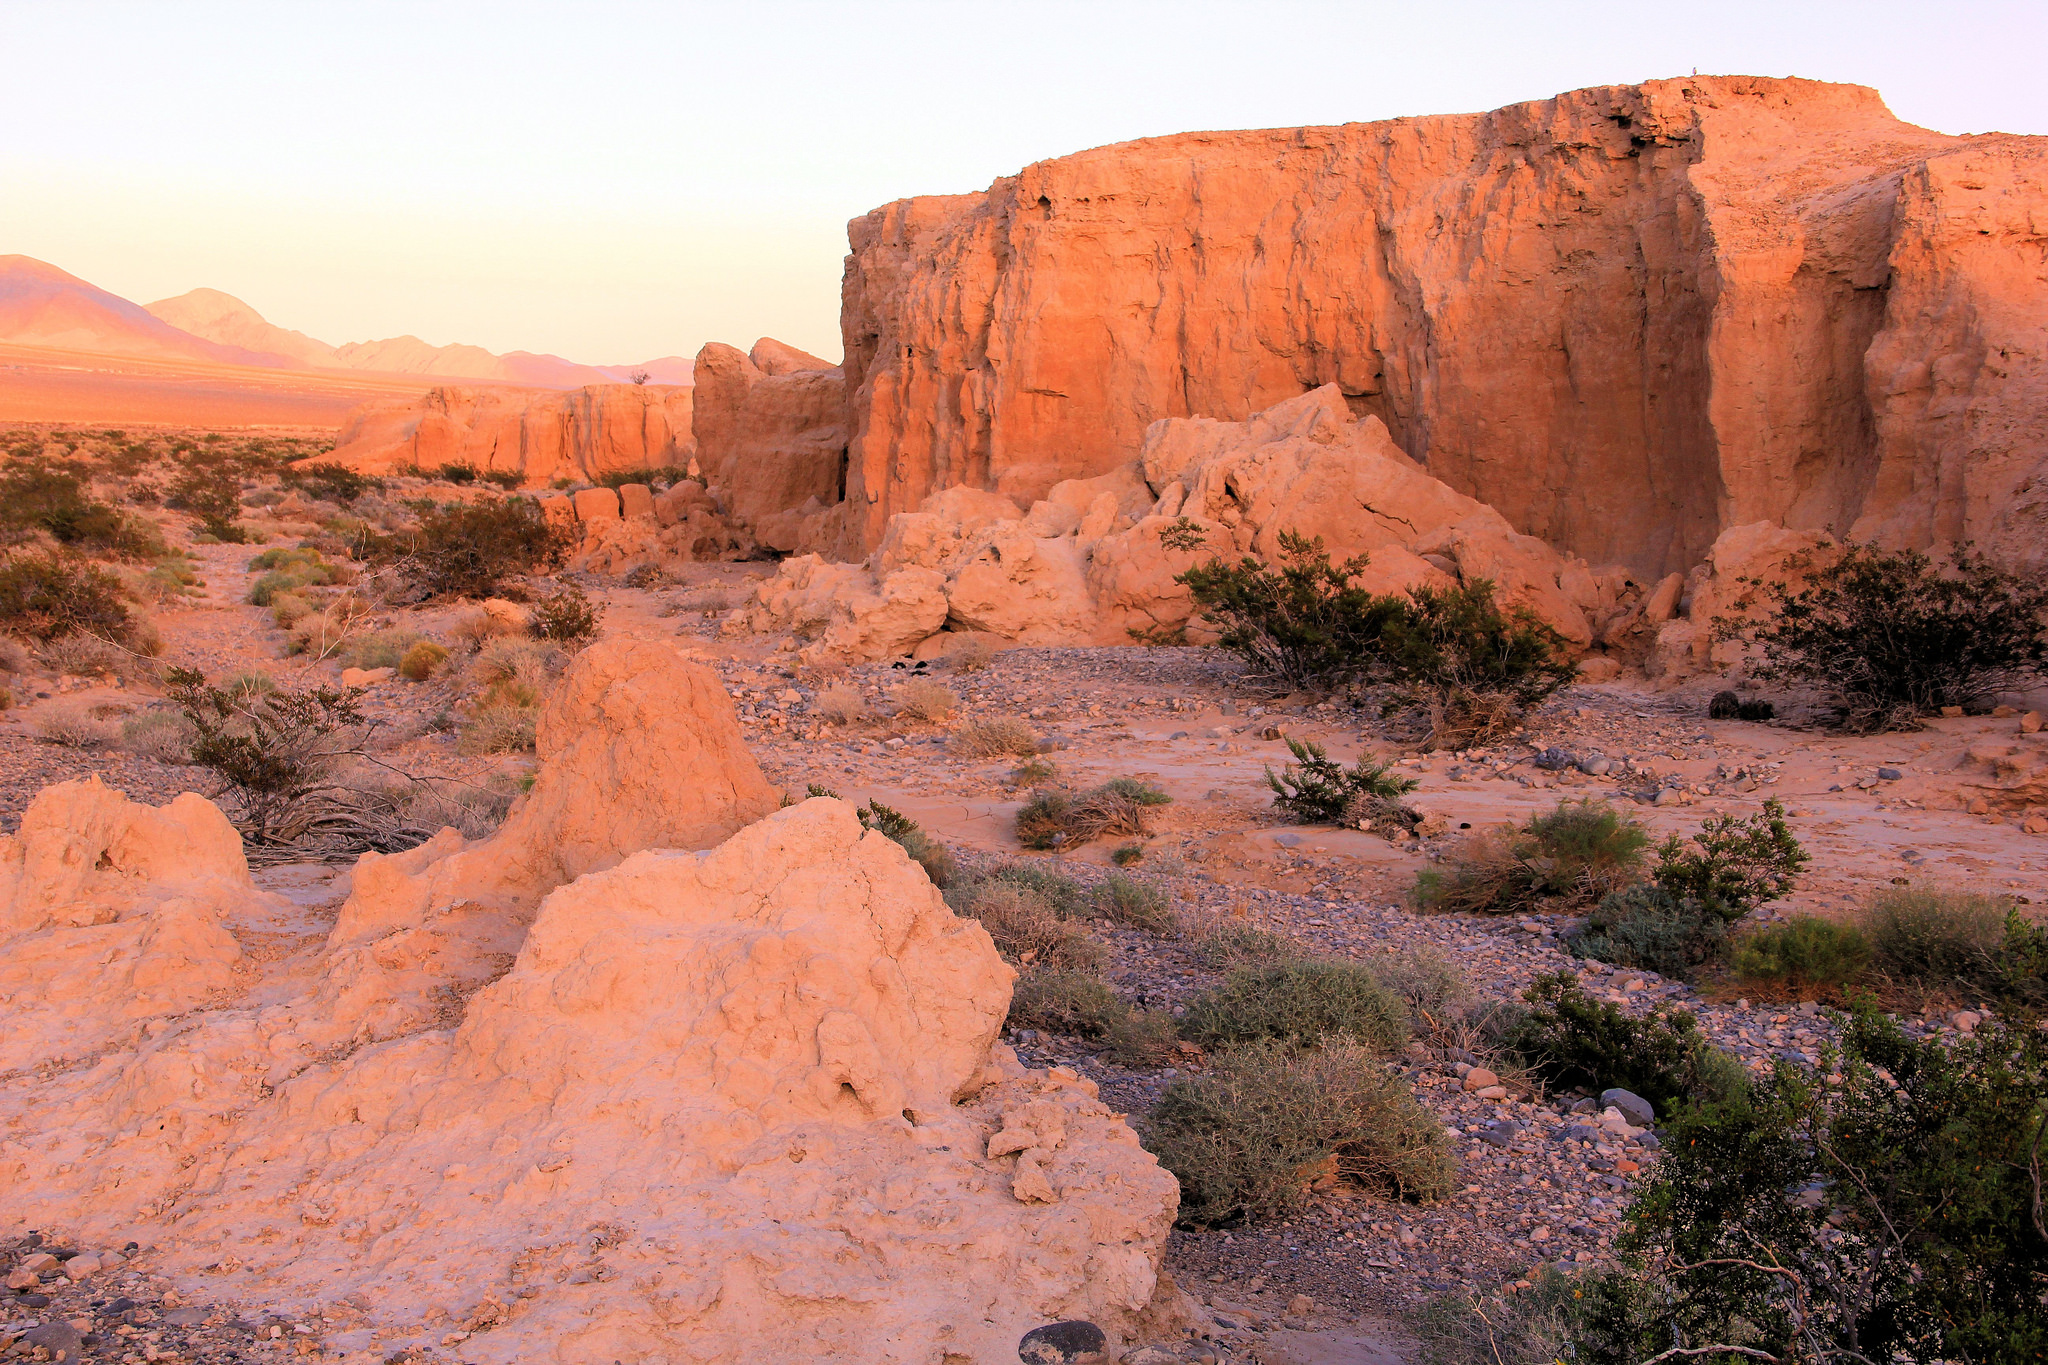 Tule Springs Fossil Beds at Sunset | © NPCA Photos/Flickr